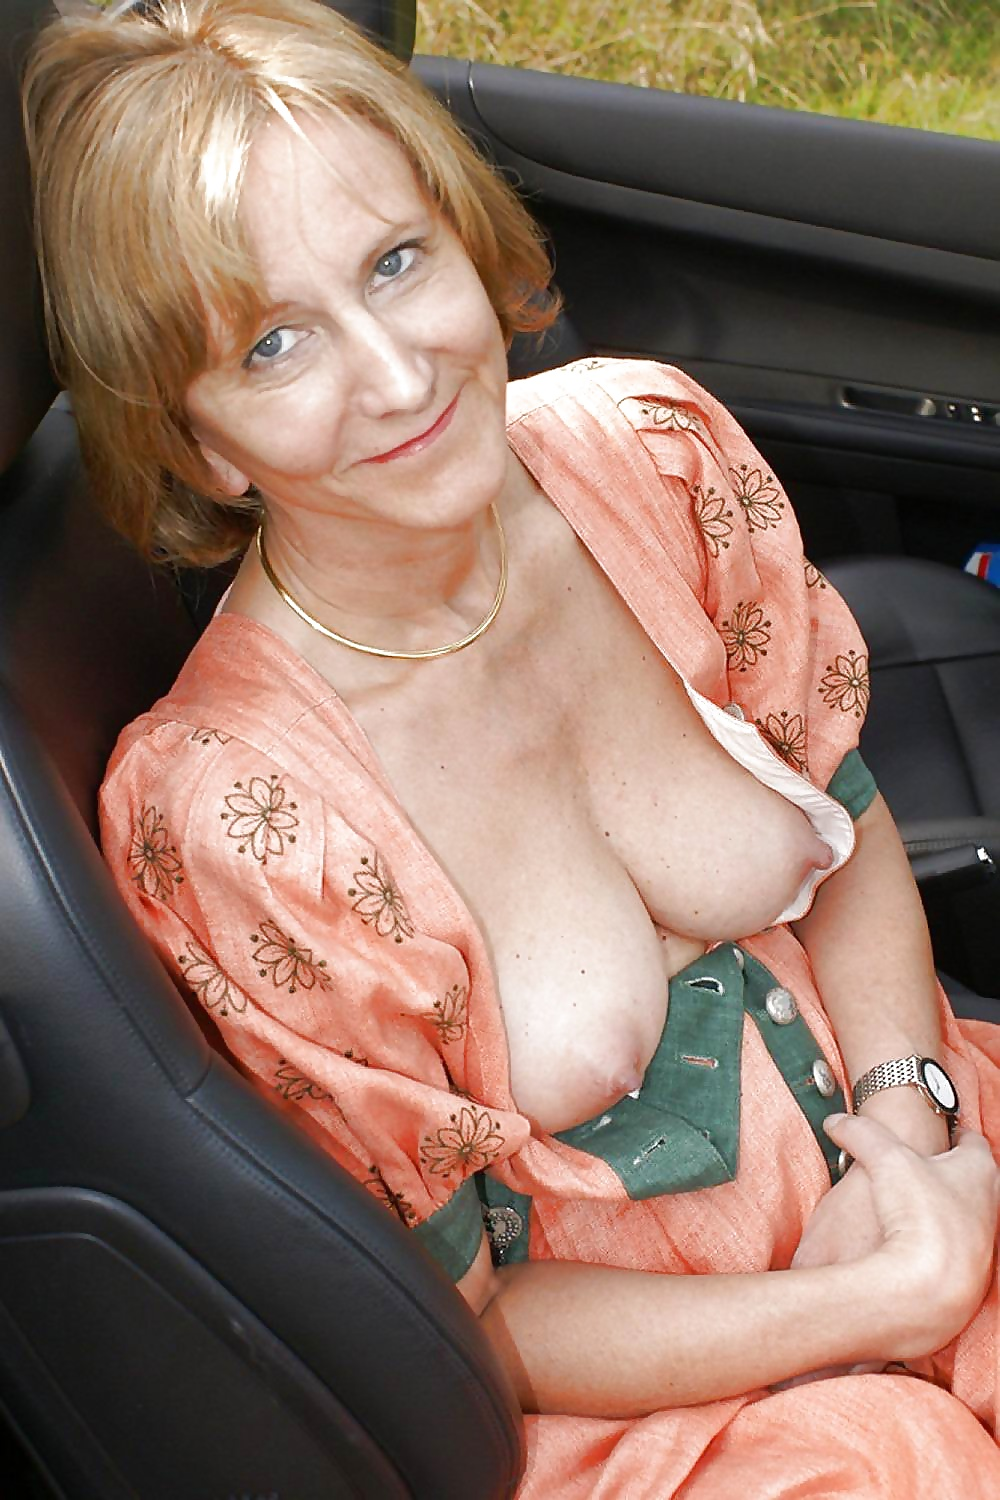 Milf women with nice tits